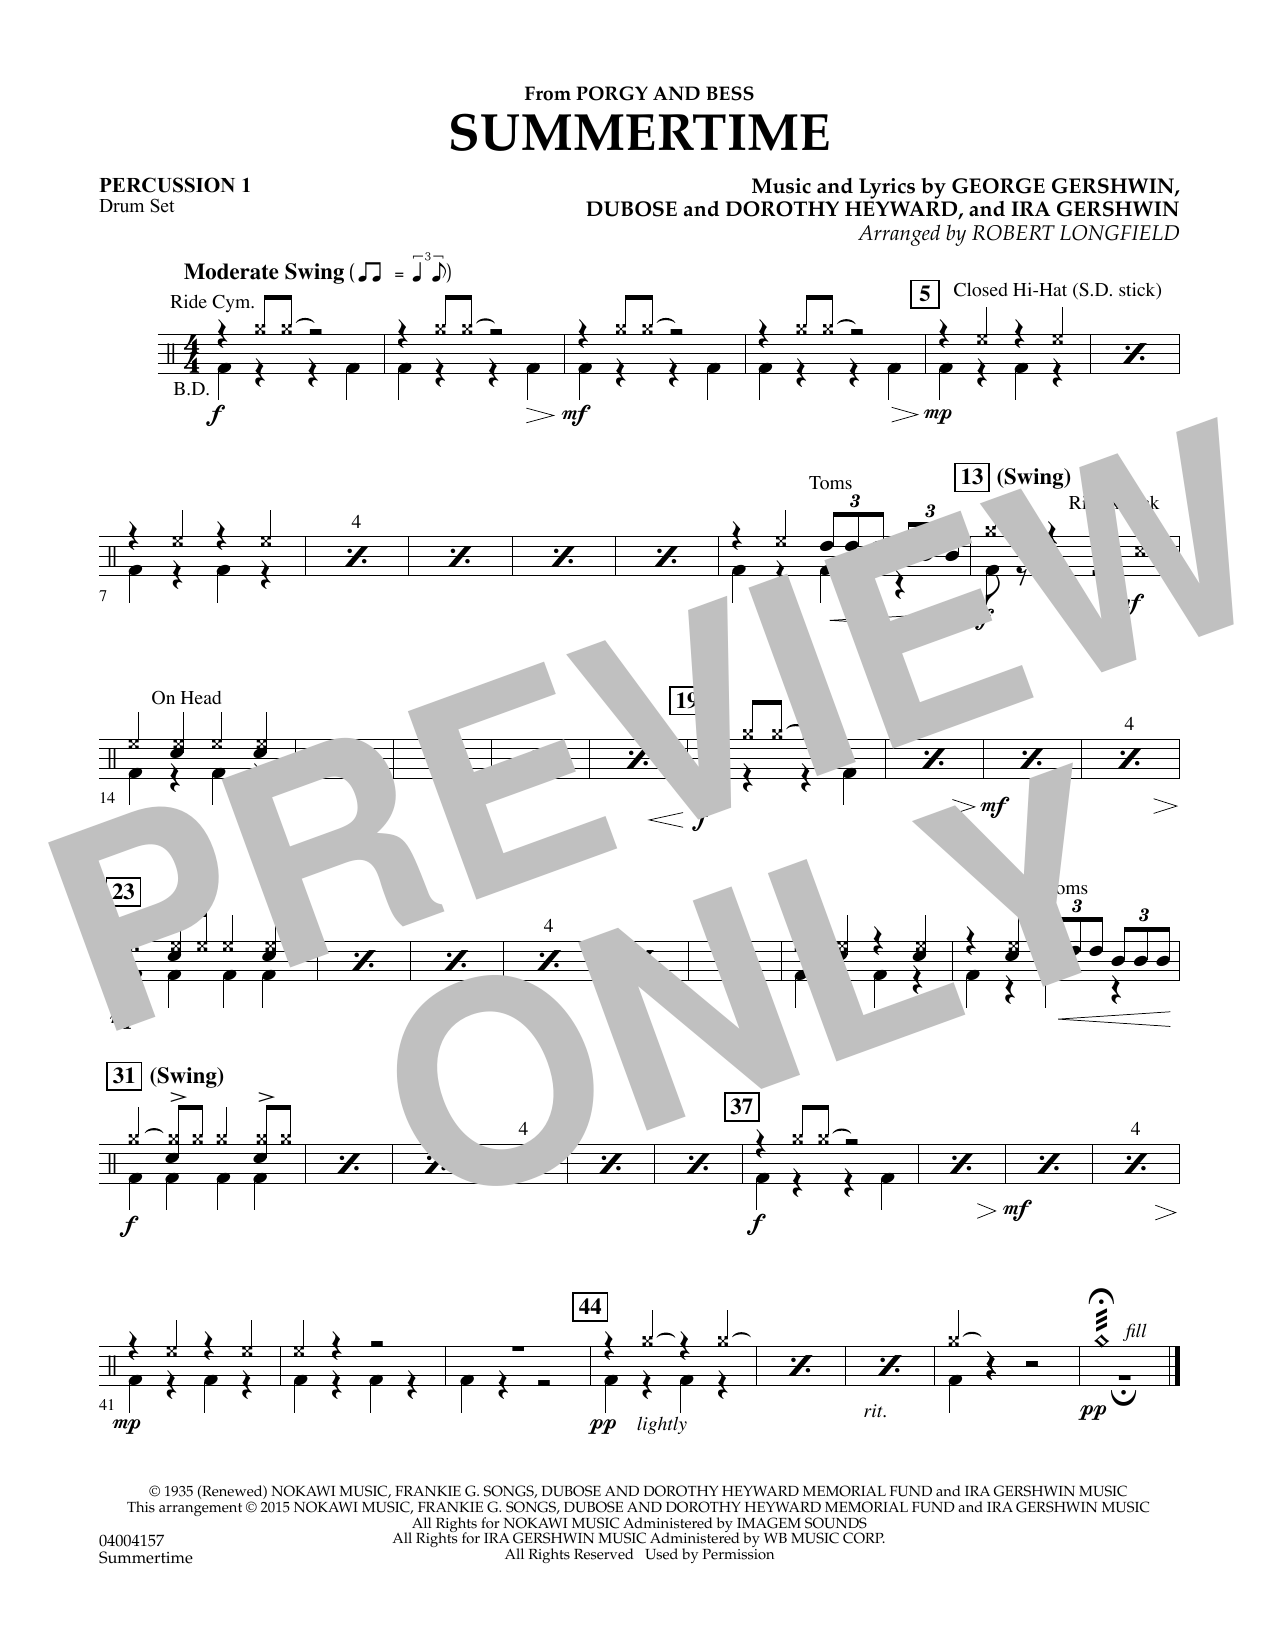 Summertime (from Porgy and Bess) - Percussion 1 (Concert Band)